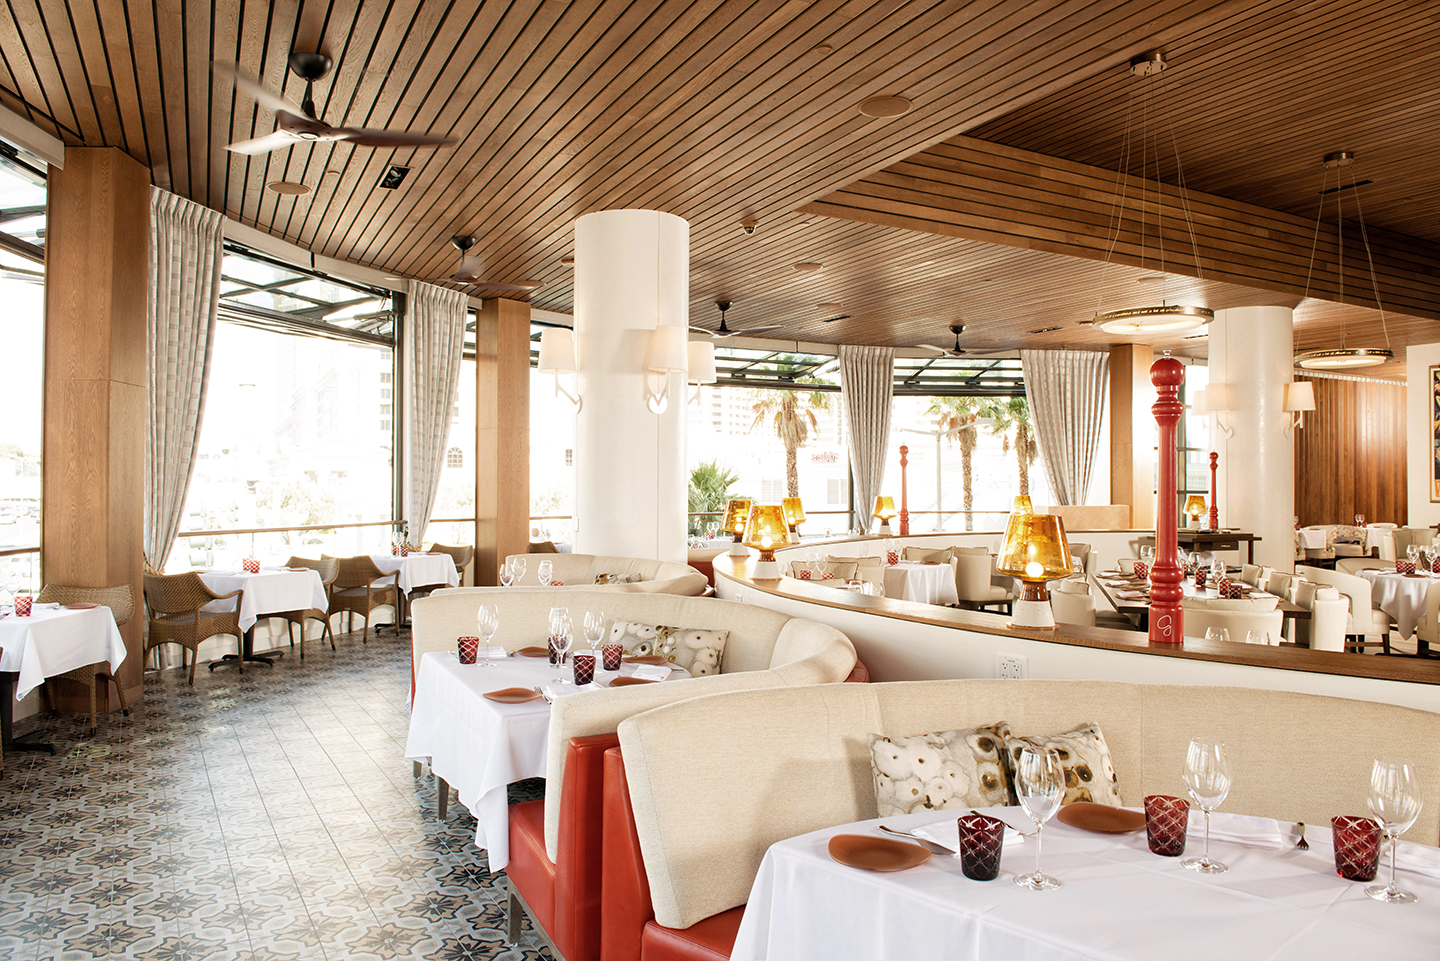 Giada at The Cromwell offers beautiful views from retractable windows in the dining room. Photo courtesy of Caesars Entertainment